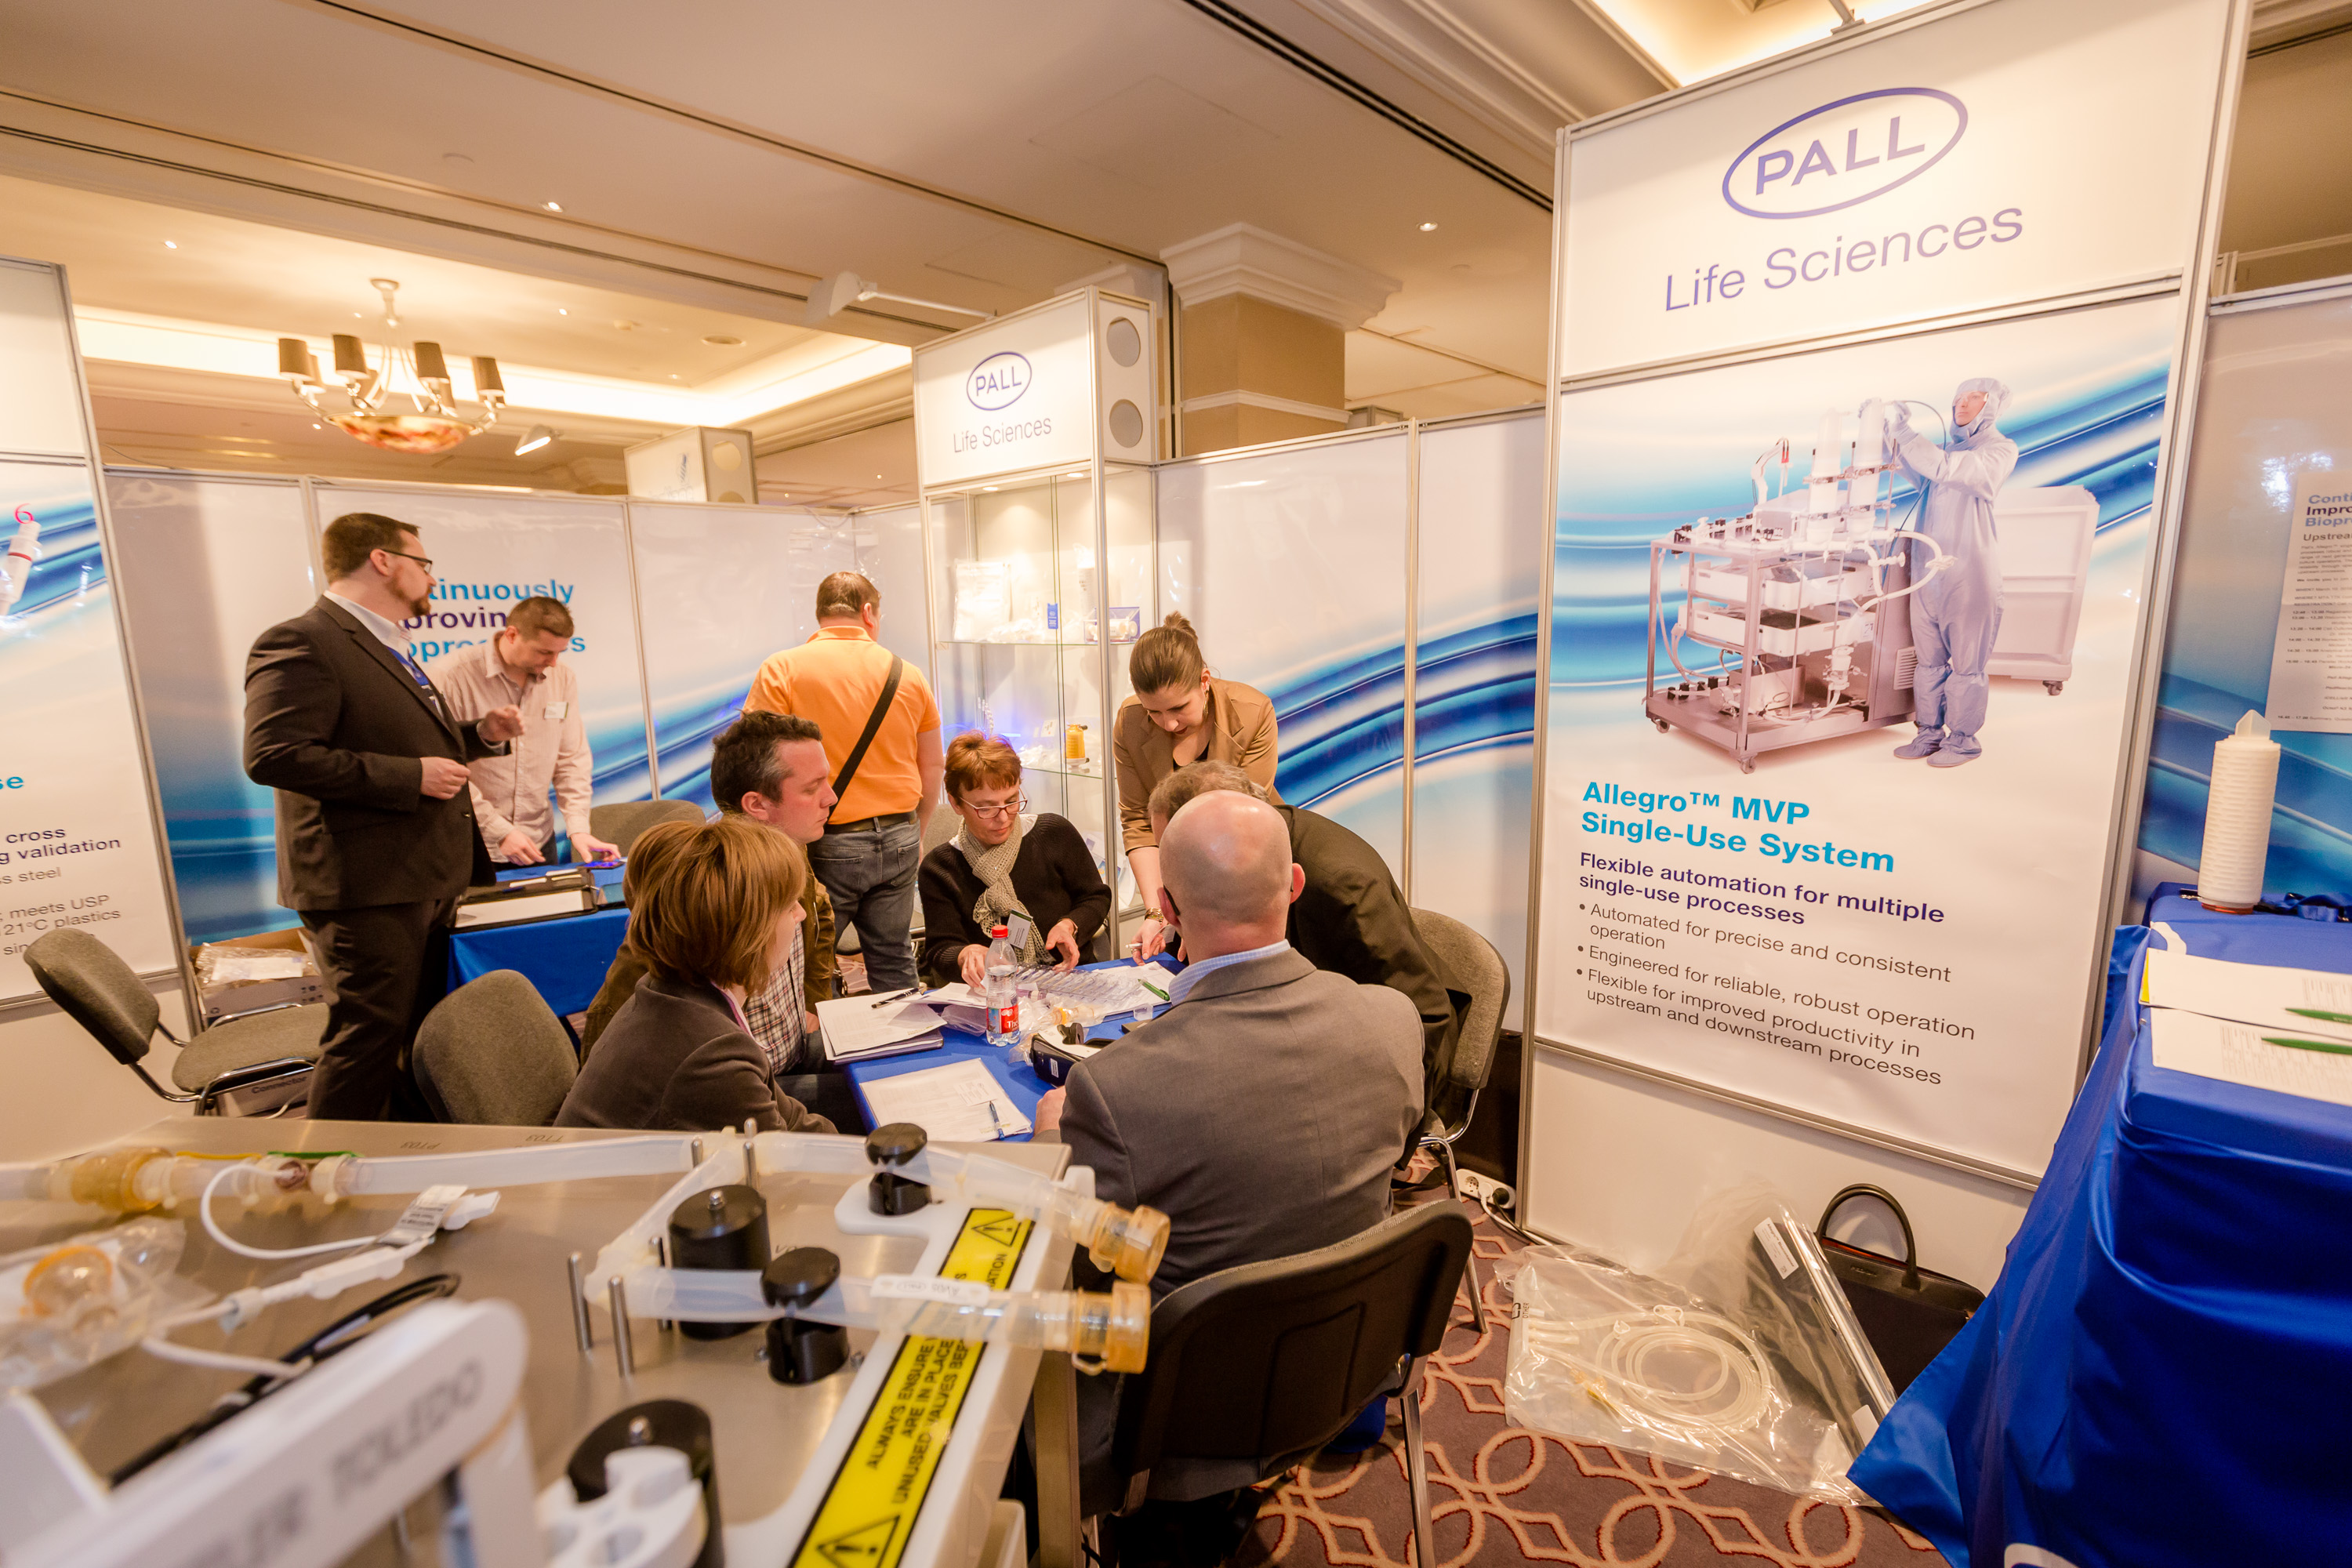 Board room of Pall Life Sciences at PHARM Connect Congress 2016. Credit: TEG